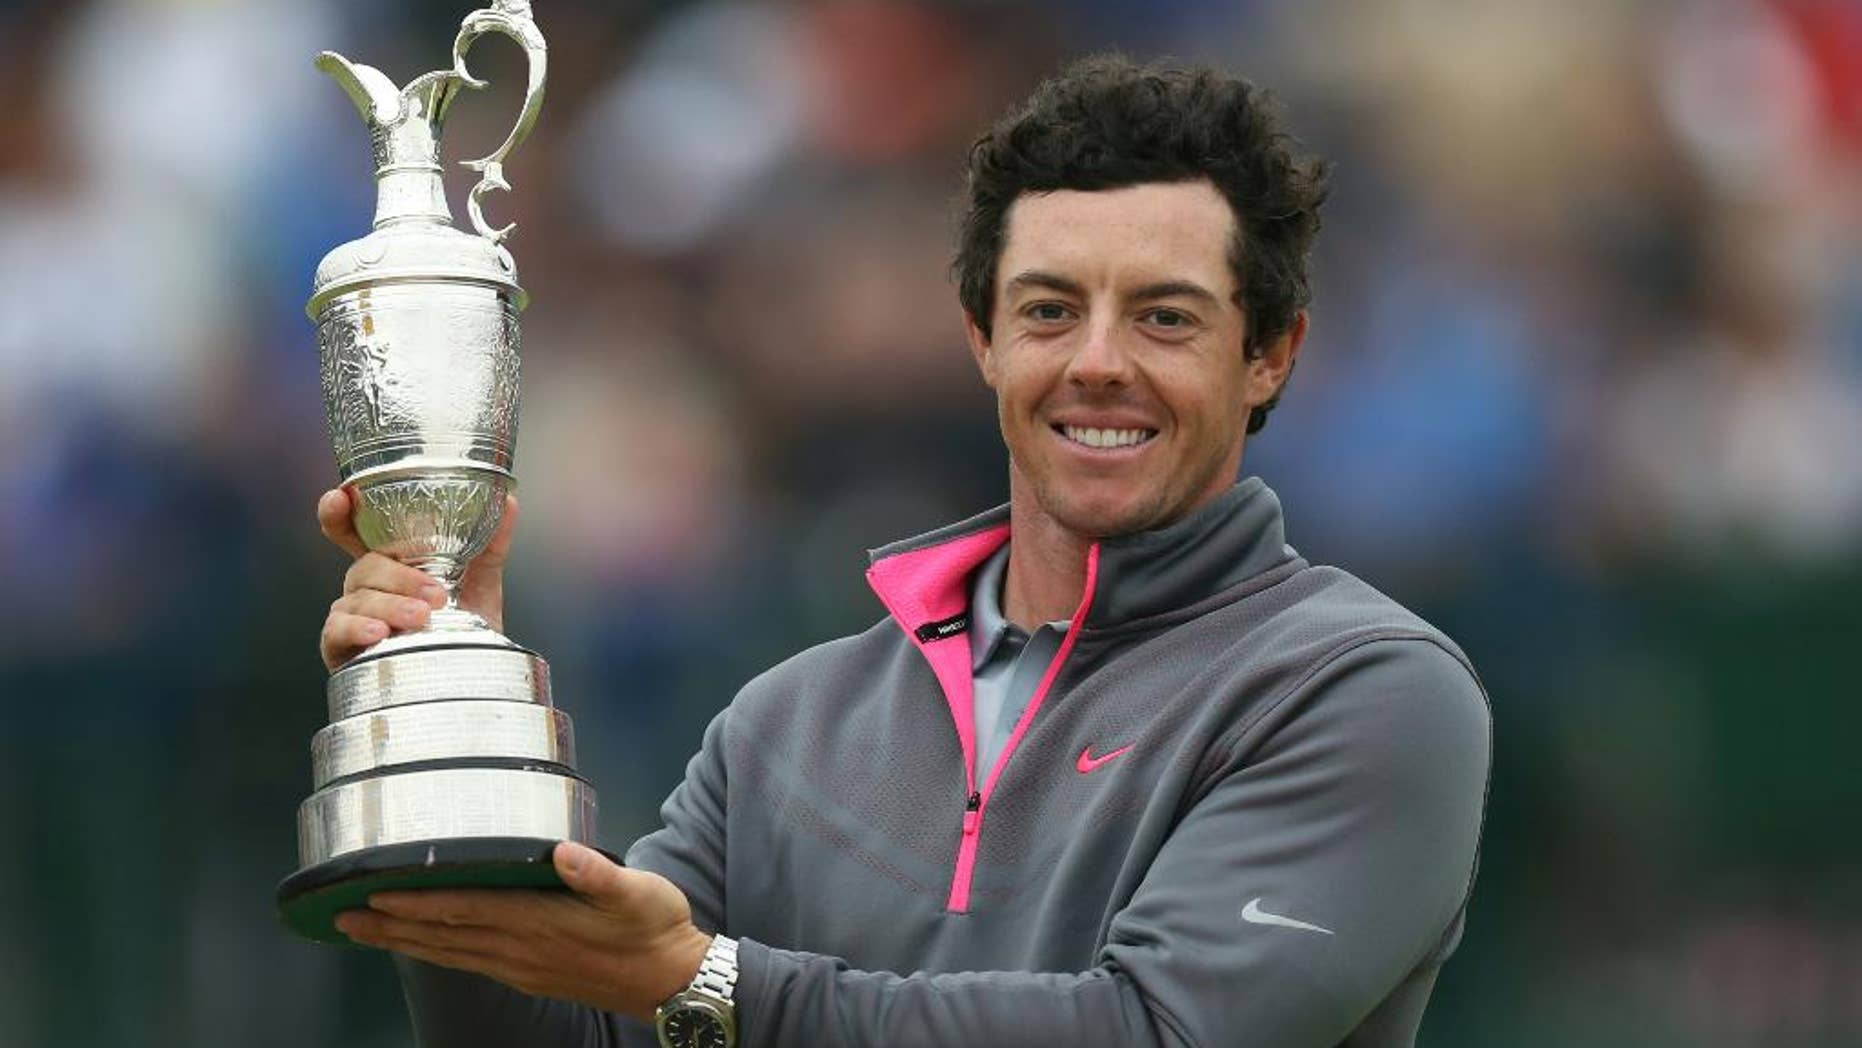 FILE - In this Sunday, July 20, 2014 file photo, Rory McIlroy of Northern Ireland holds up the Claret Jug trophy after winning the British Open Golf championship at the Royal Liverpool golf club, Hoylake, England. McIlroy won't be back to defend his title in the British Open. The world's No. 1 player announced Wednesday, July 8, 2015 that a ruptured ligament in his left ankle will keep him from St. Andrews to play in the British Open. (AP Photo/Scott Heppell, File)